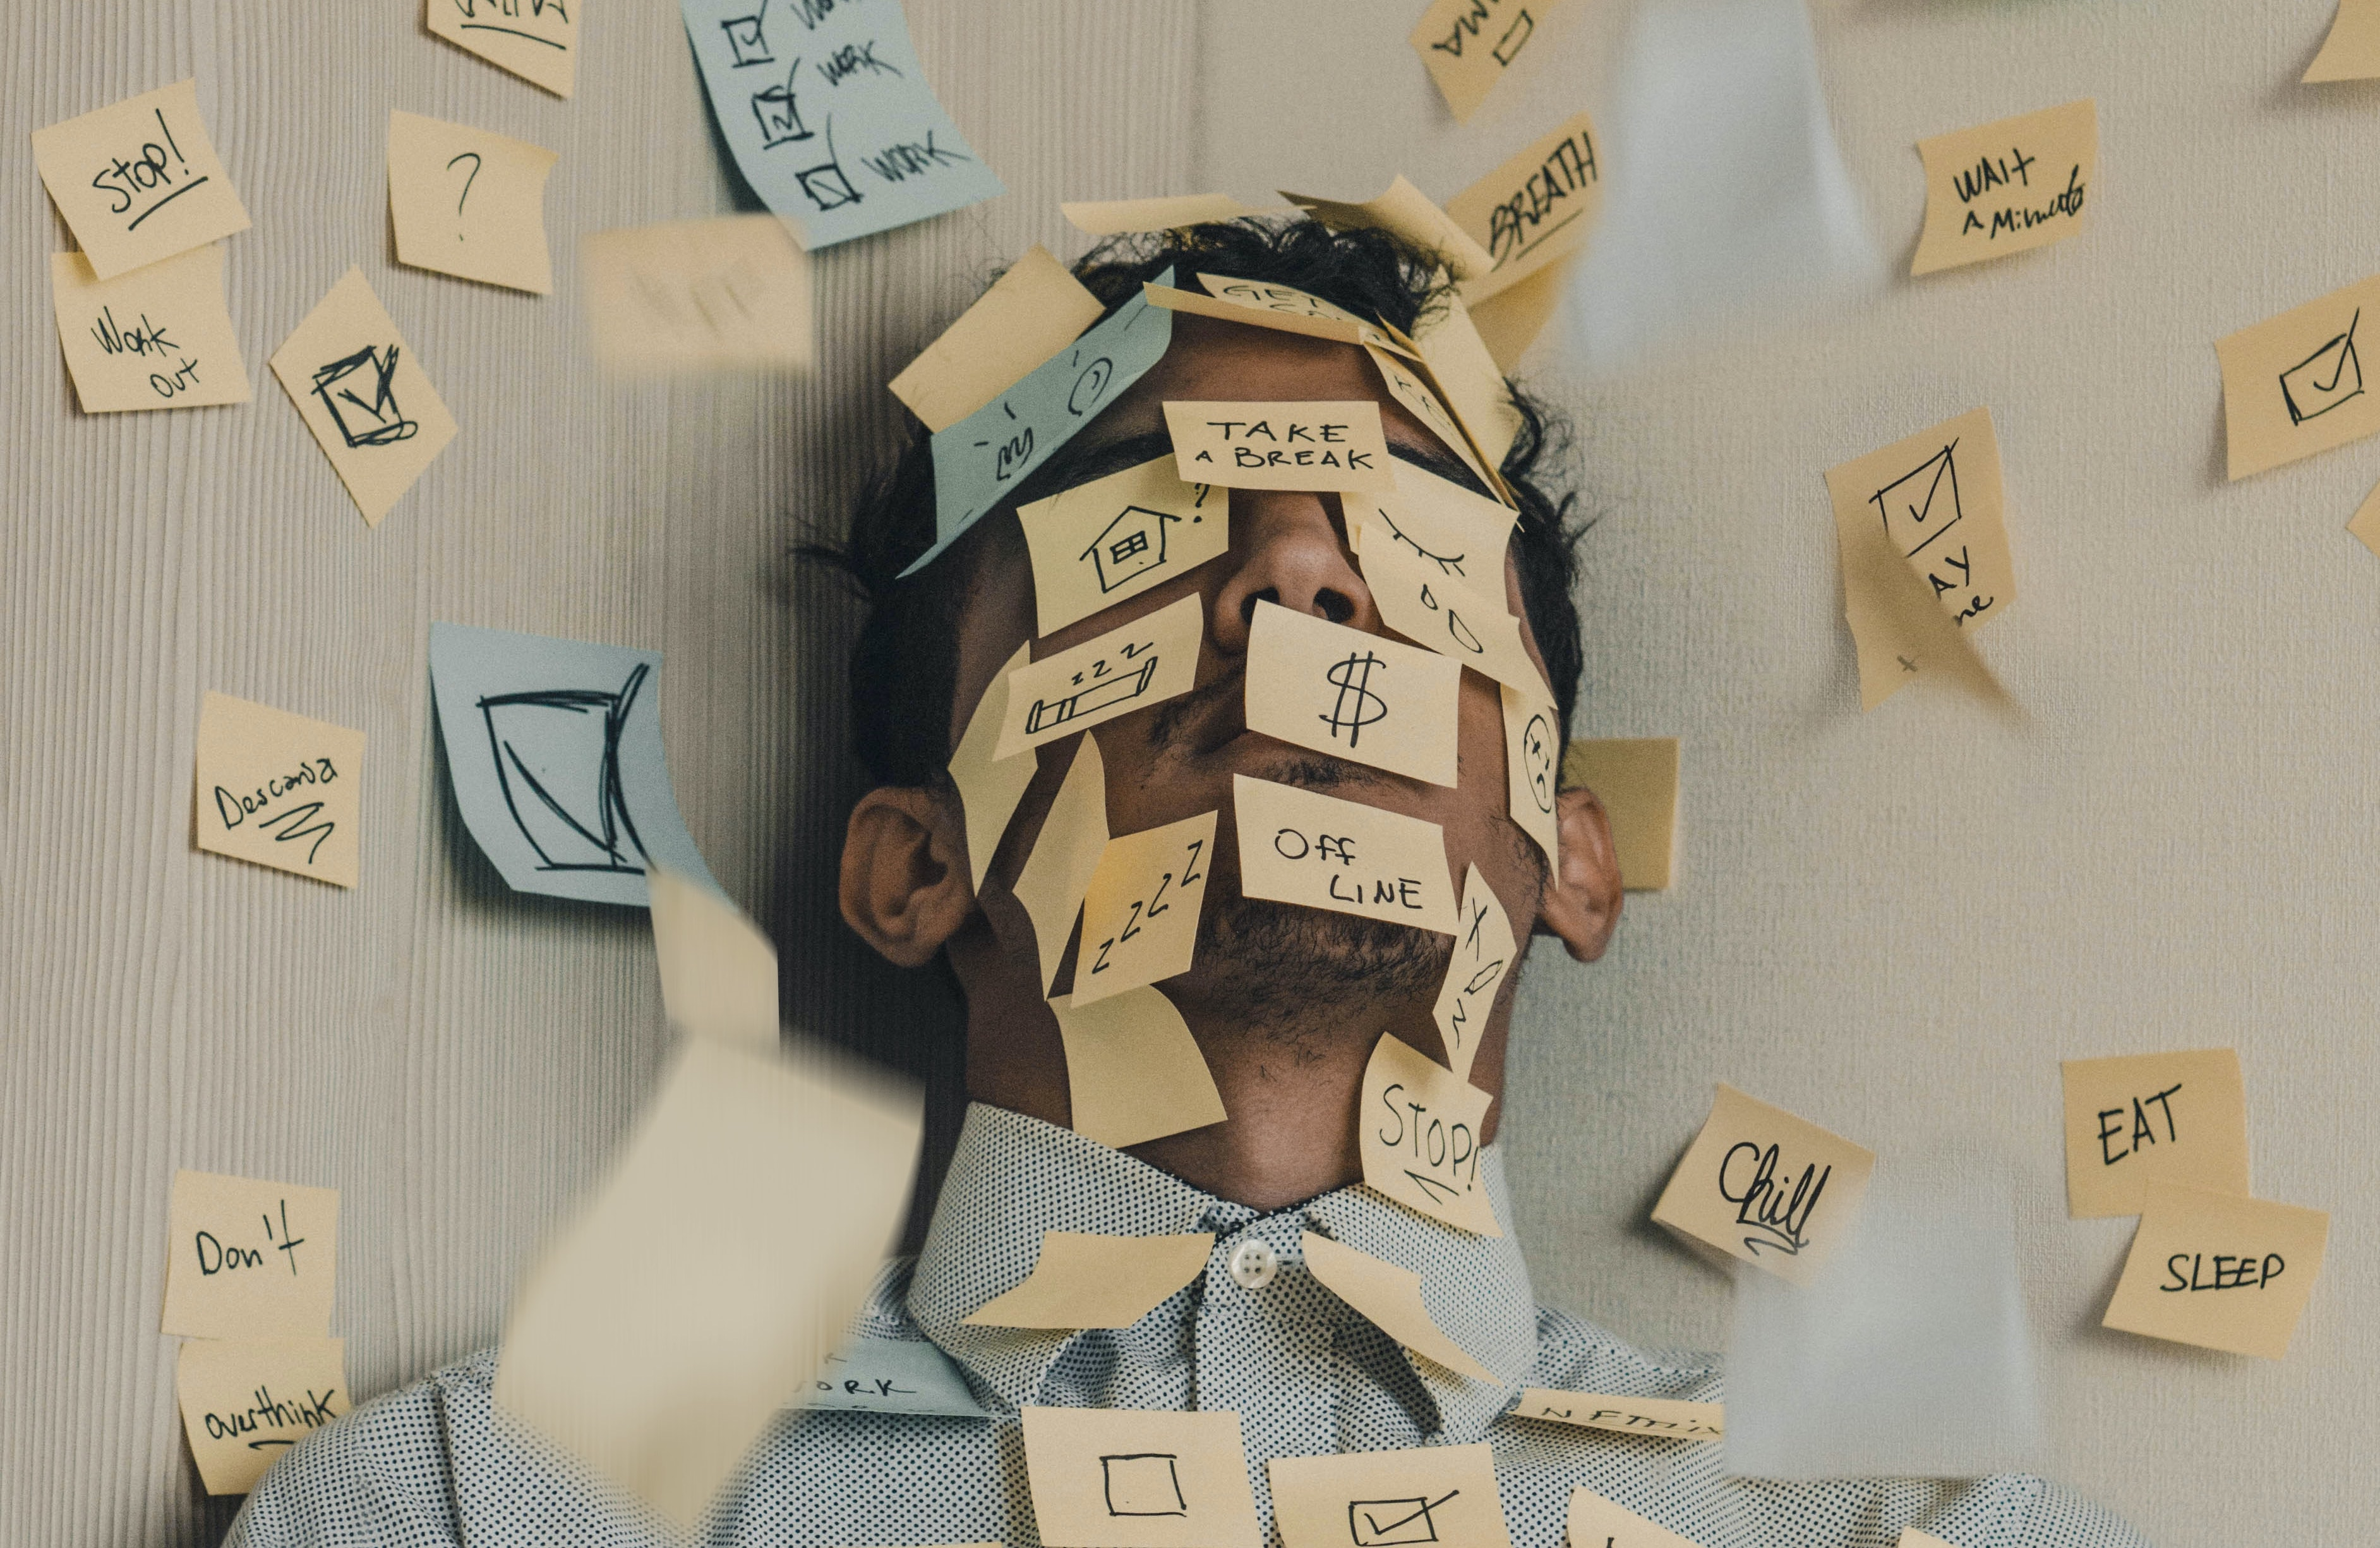 7 hacks to turn around an unproductive day